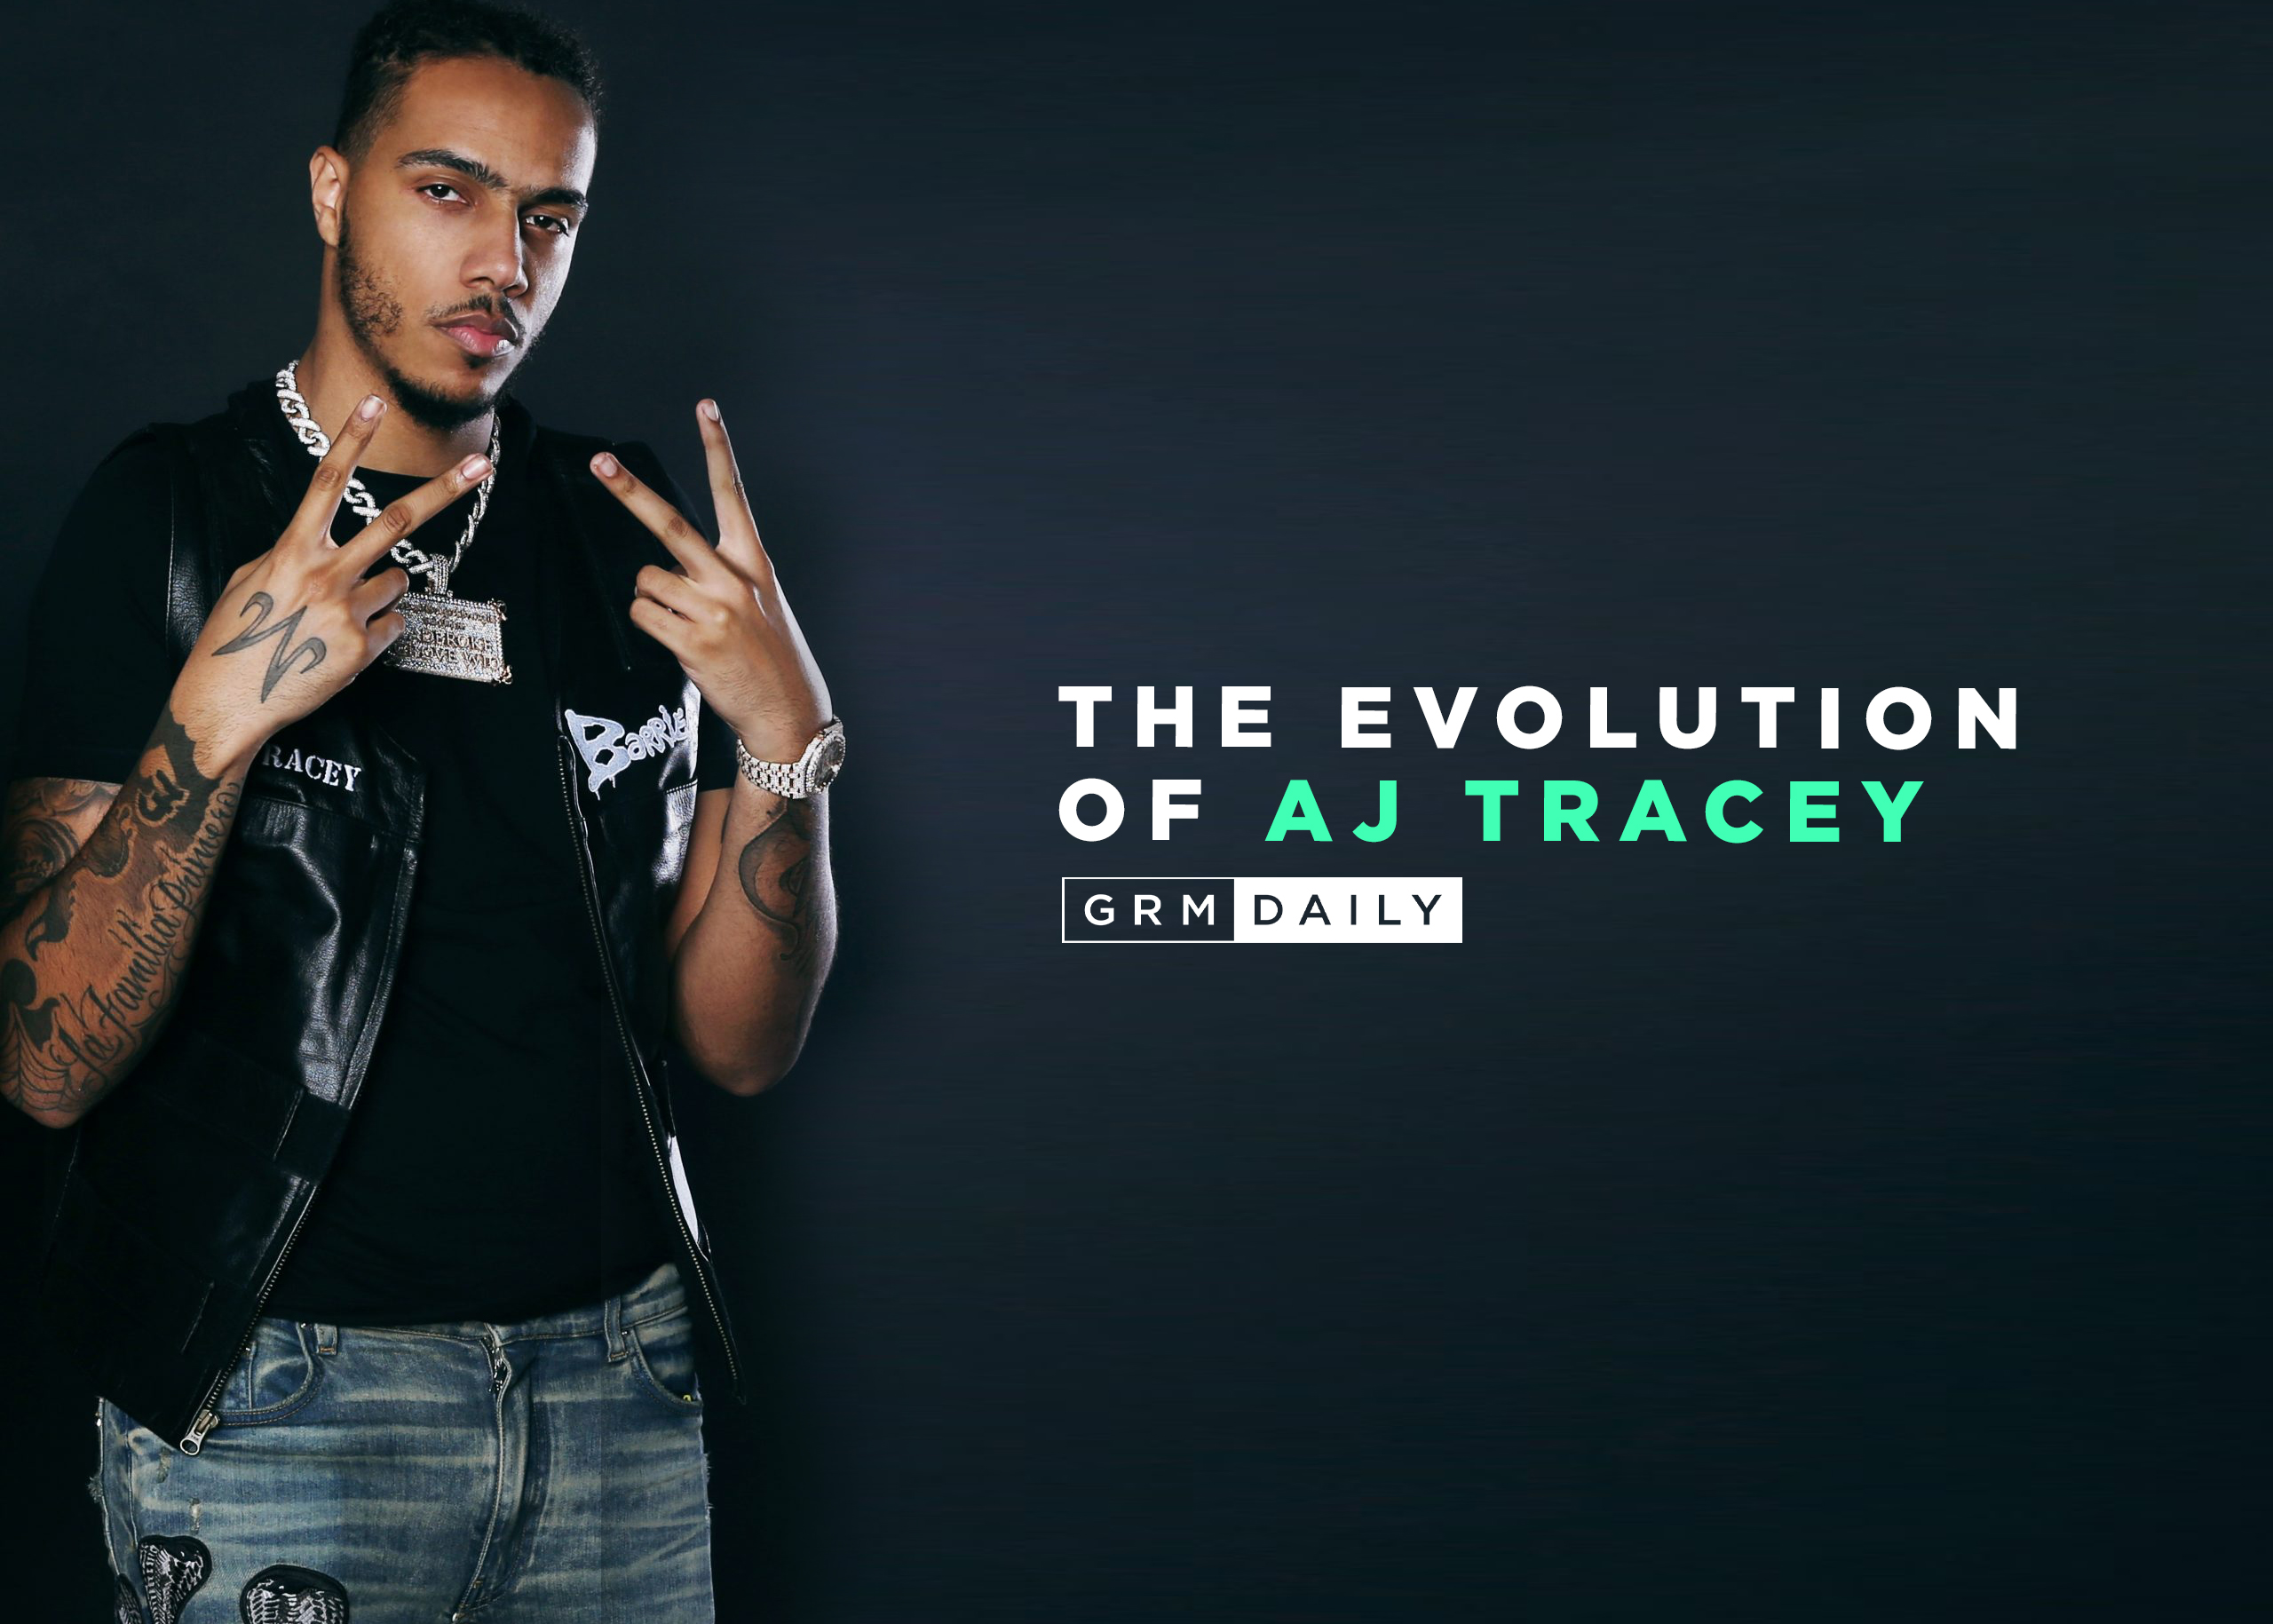 The evolution of AJ Tracey GRM